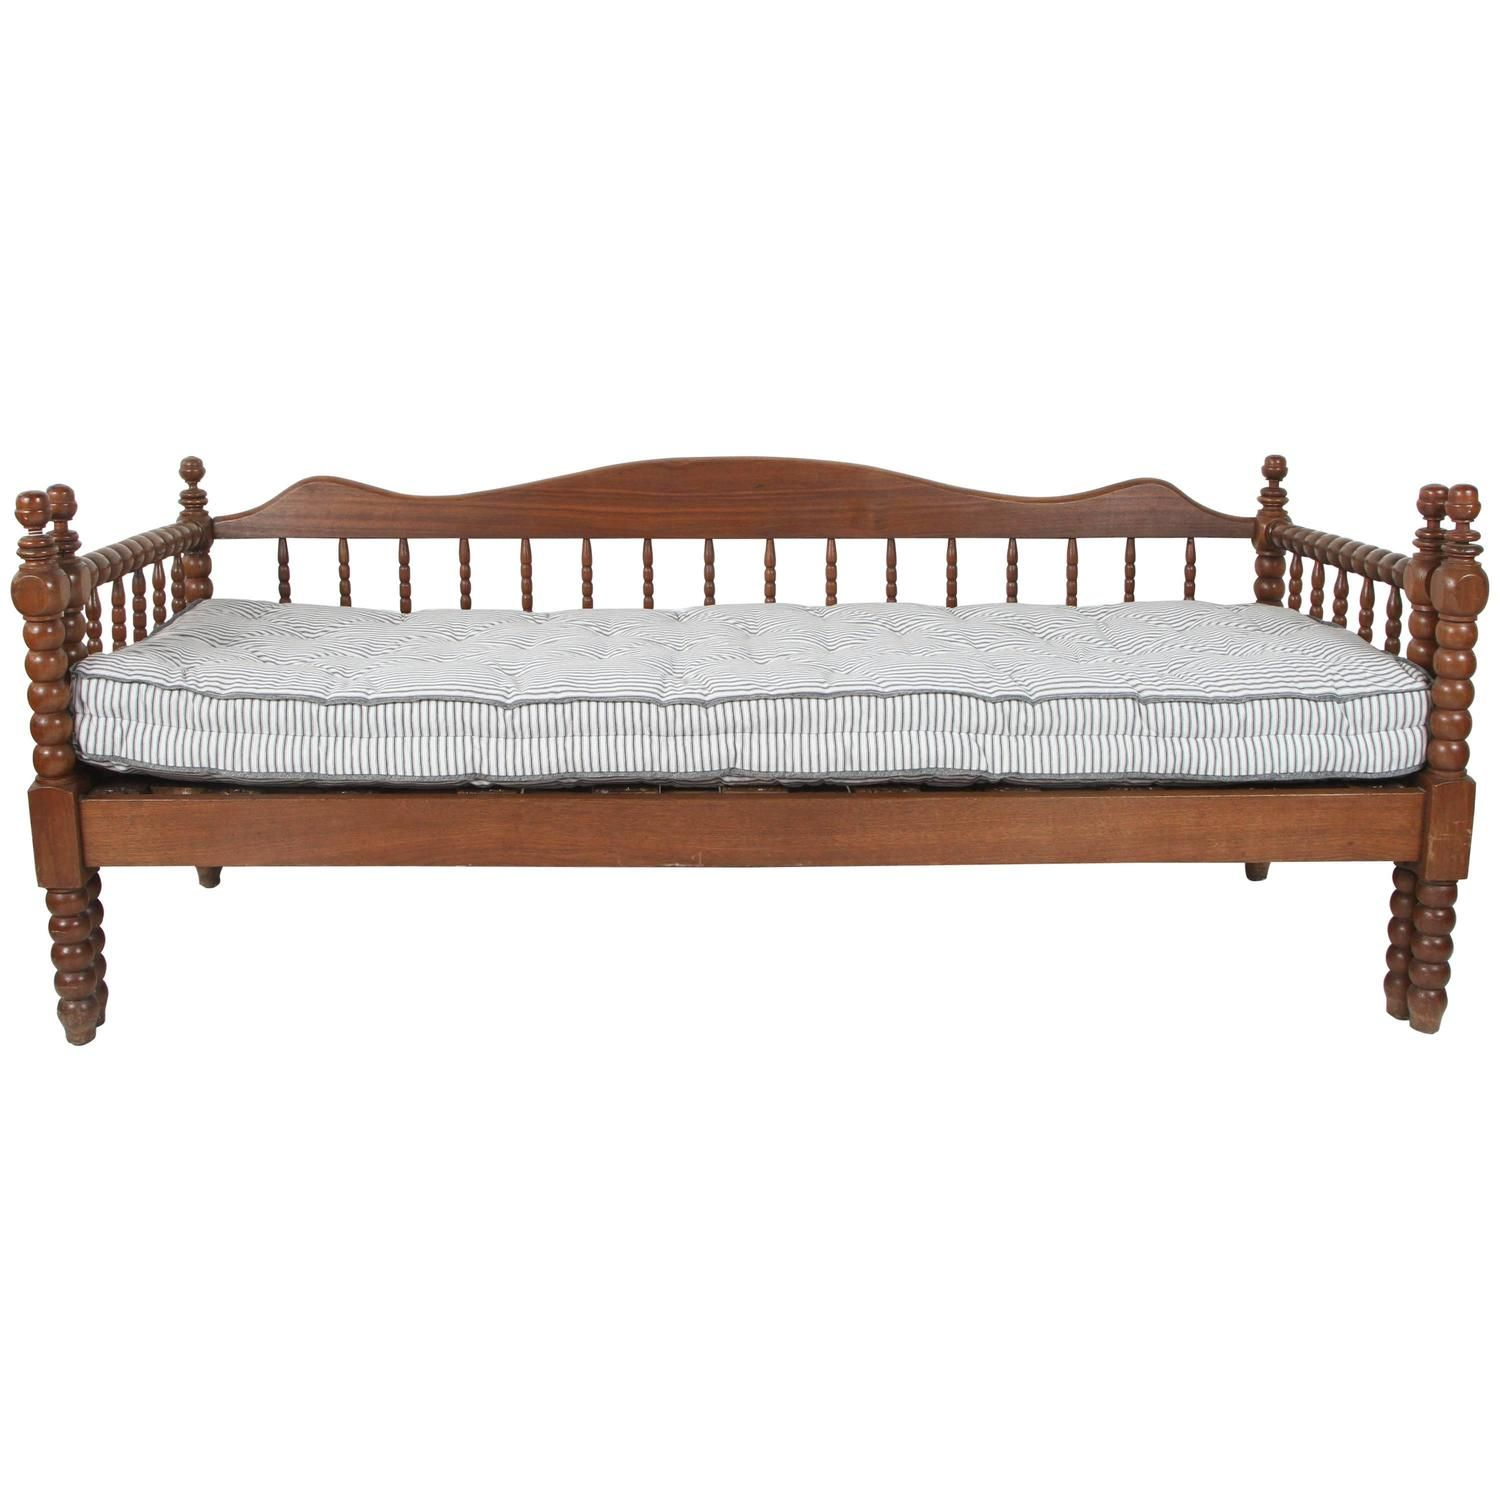 Vintage American Spindle Daybed With Pull Out Trundle Daybed Trundle Daybeds For Sale